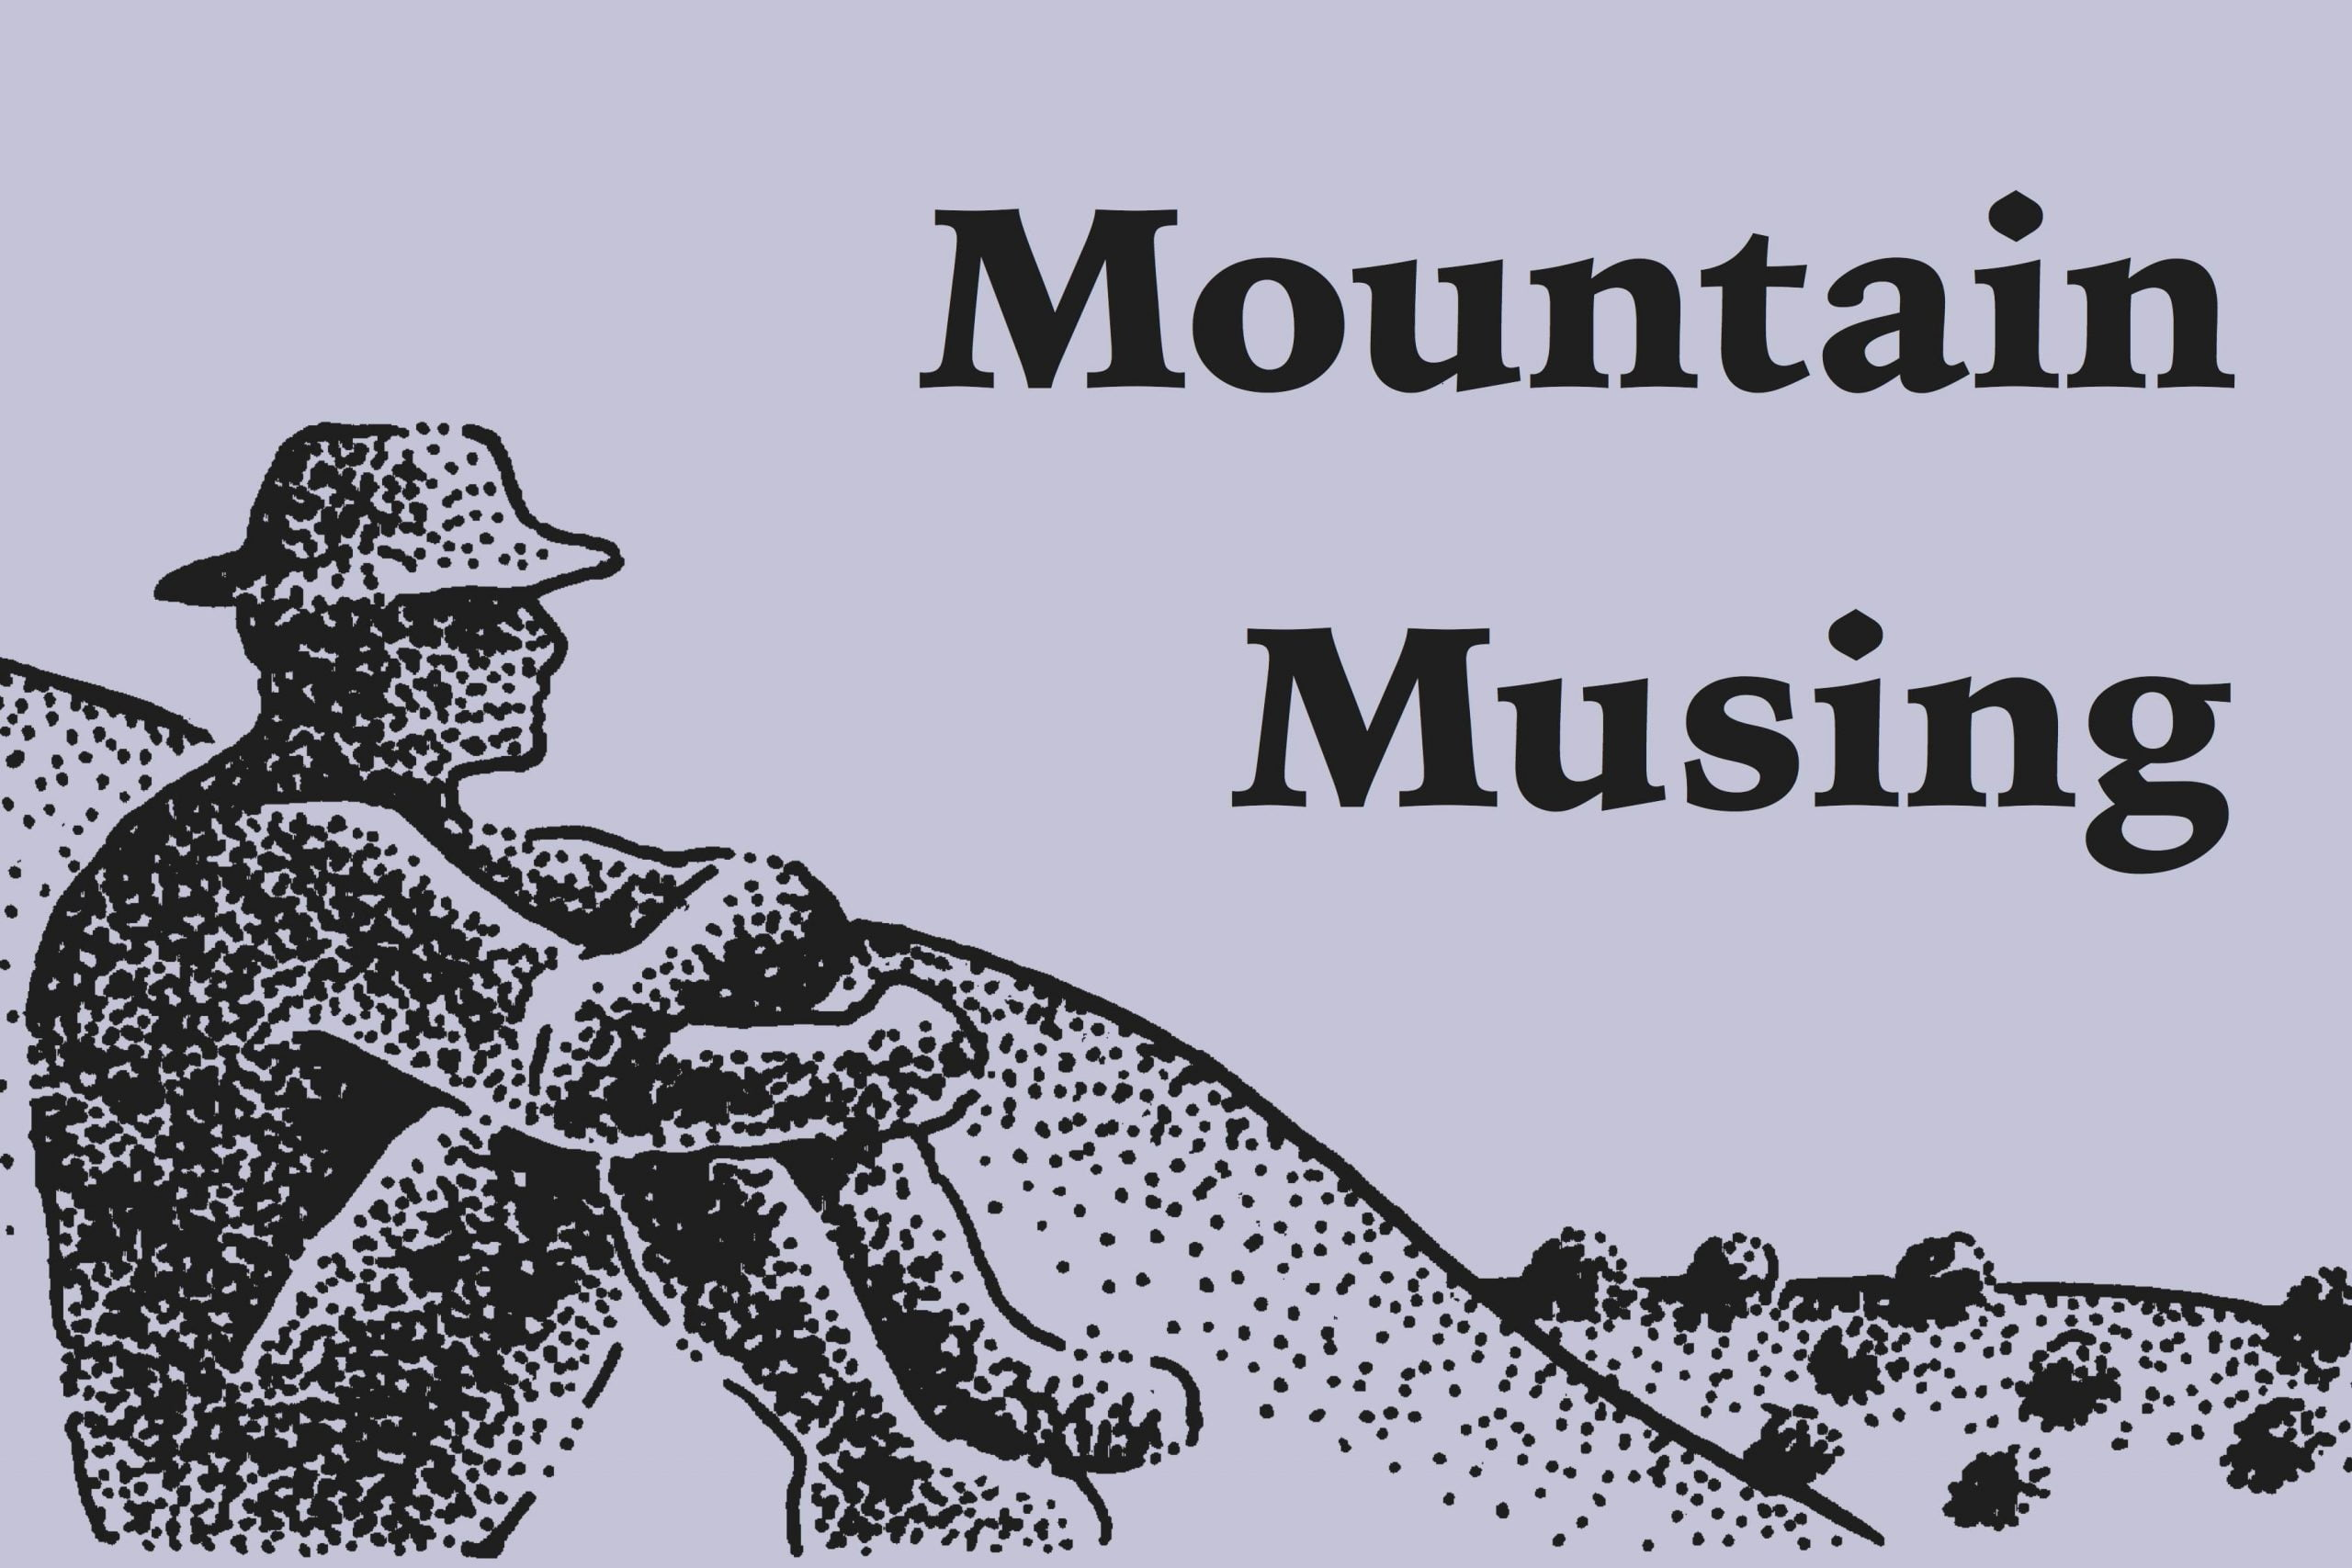 Music and the mountains: Why now?